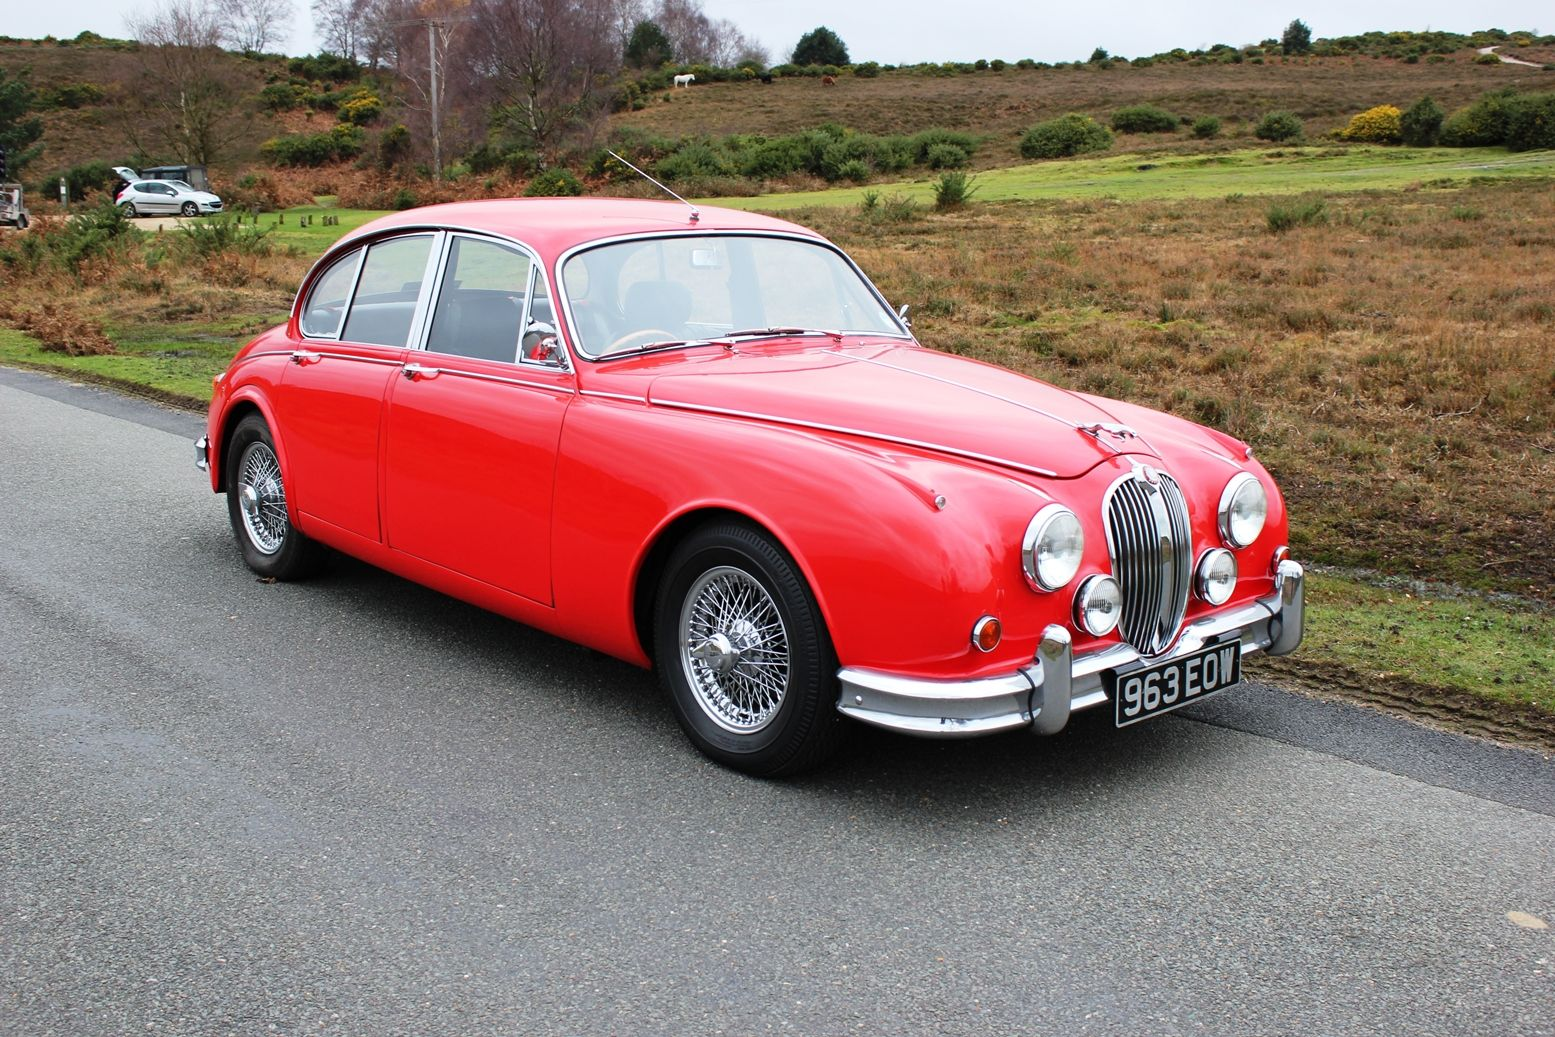 Jaguar Mk2 3 8 With Manual Gearbox 1963 Bright Red With Full Black Leather Interior This Is A Very Rare Car Being One Of The Fe Jaguar Jaguar S Type Red Car